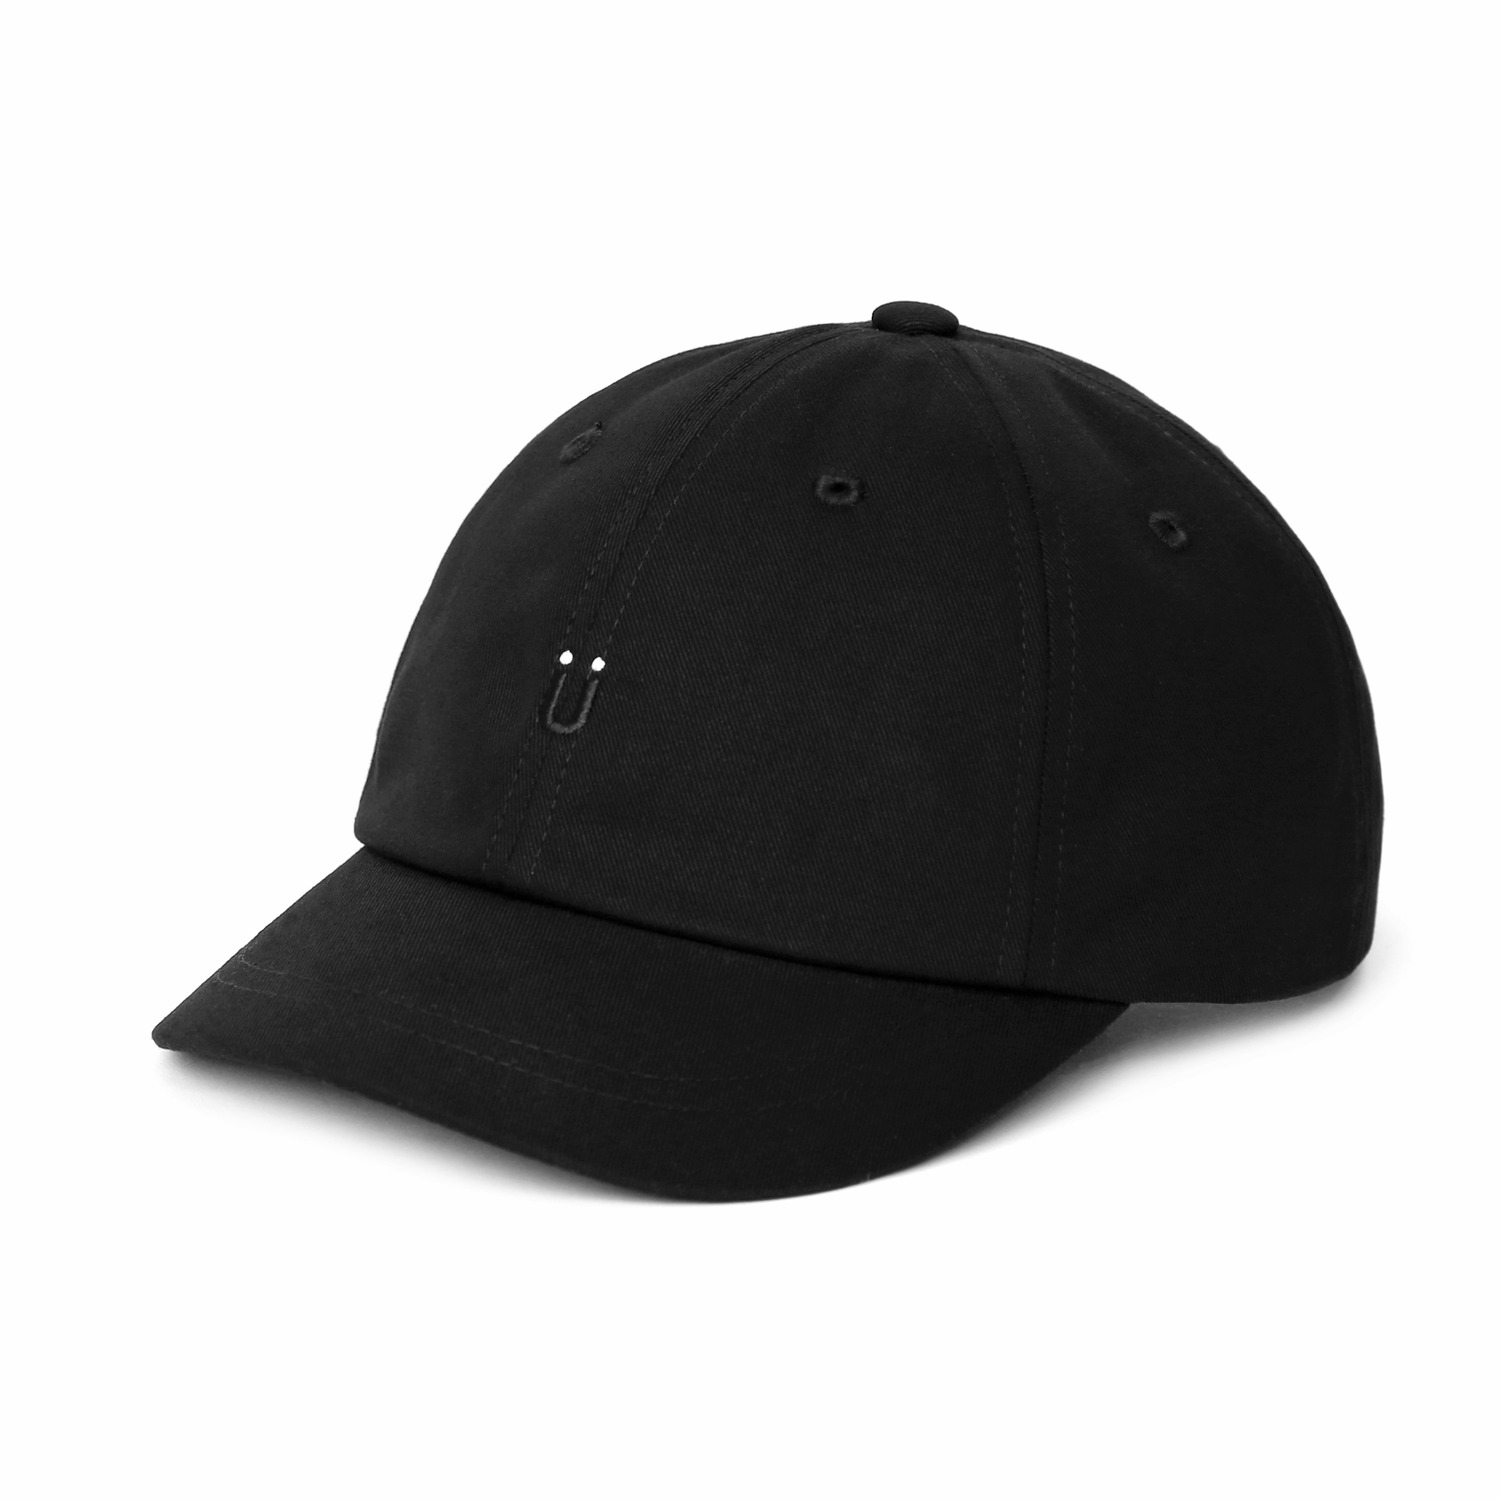 S VISOR / SHADOW LOGO / AUTHENTIC B B / U BLACK